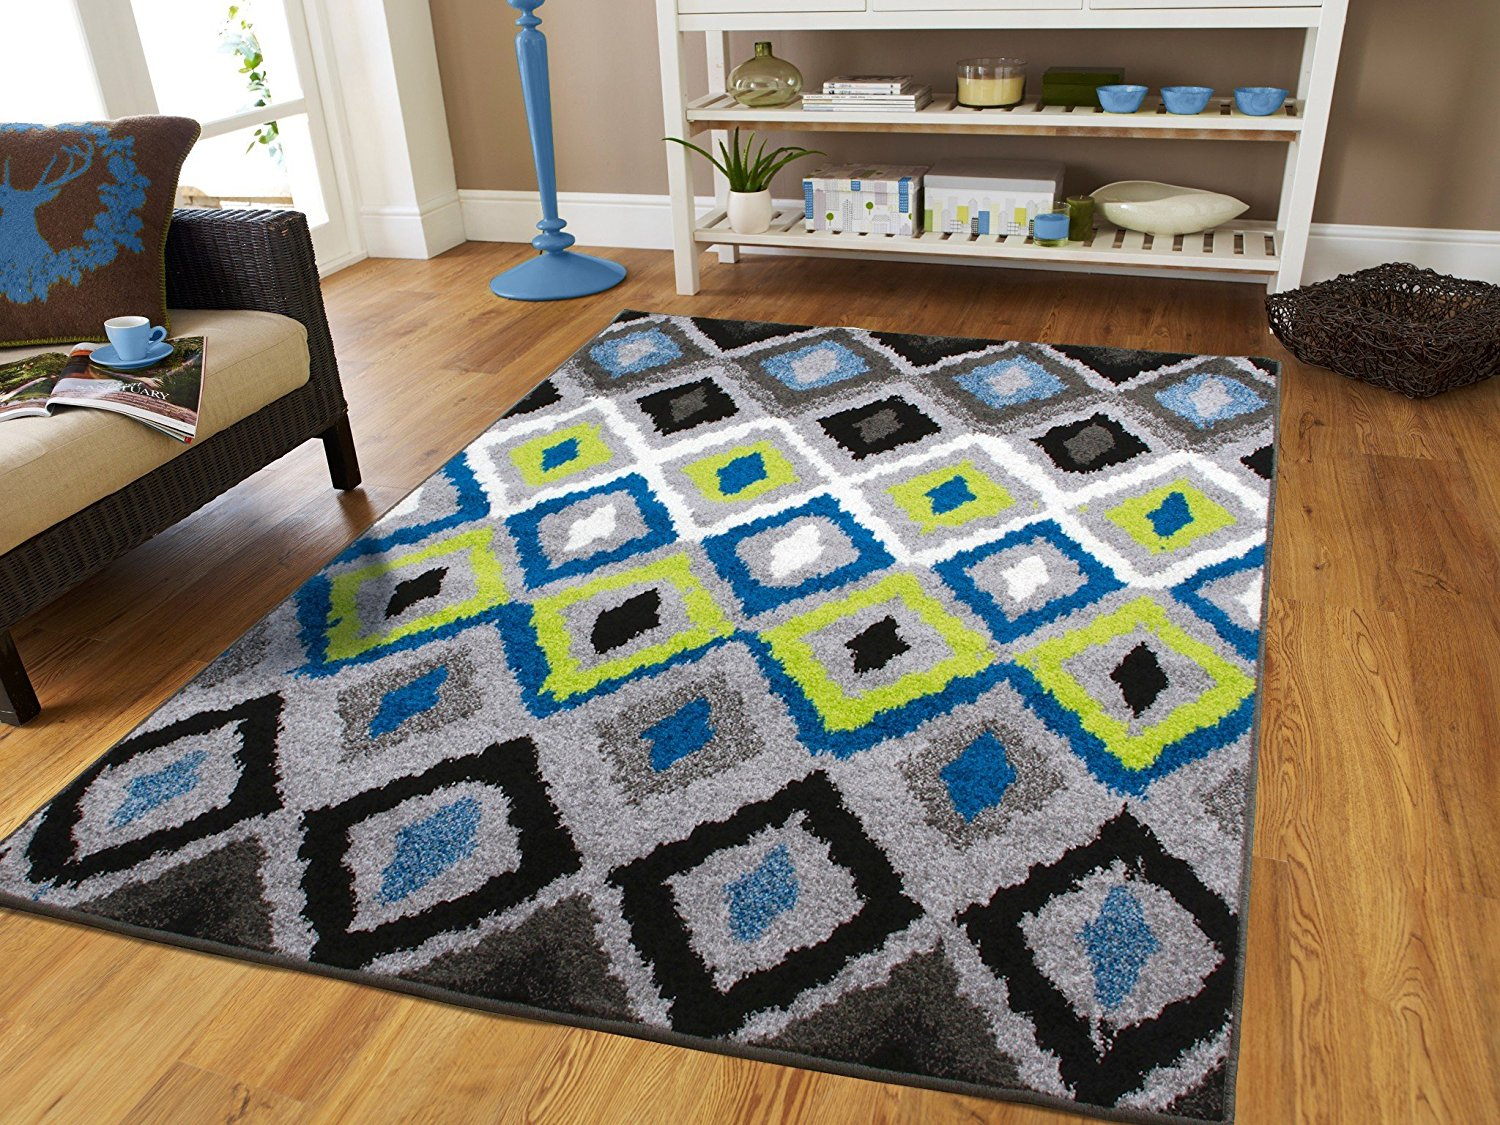 Contemporary Area Rugs 5x7 Area Rugs On Clearance 5 By 7 Rug For Living  Room Blue